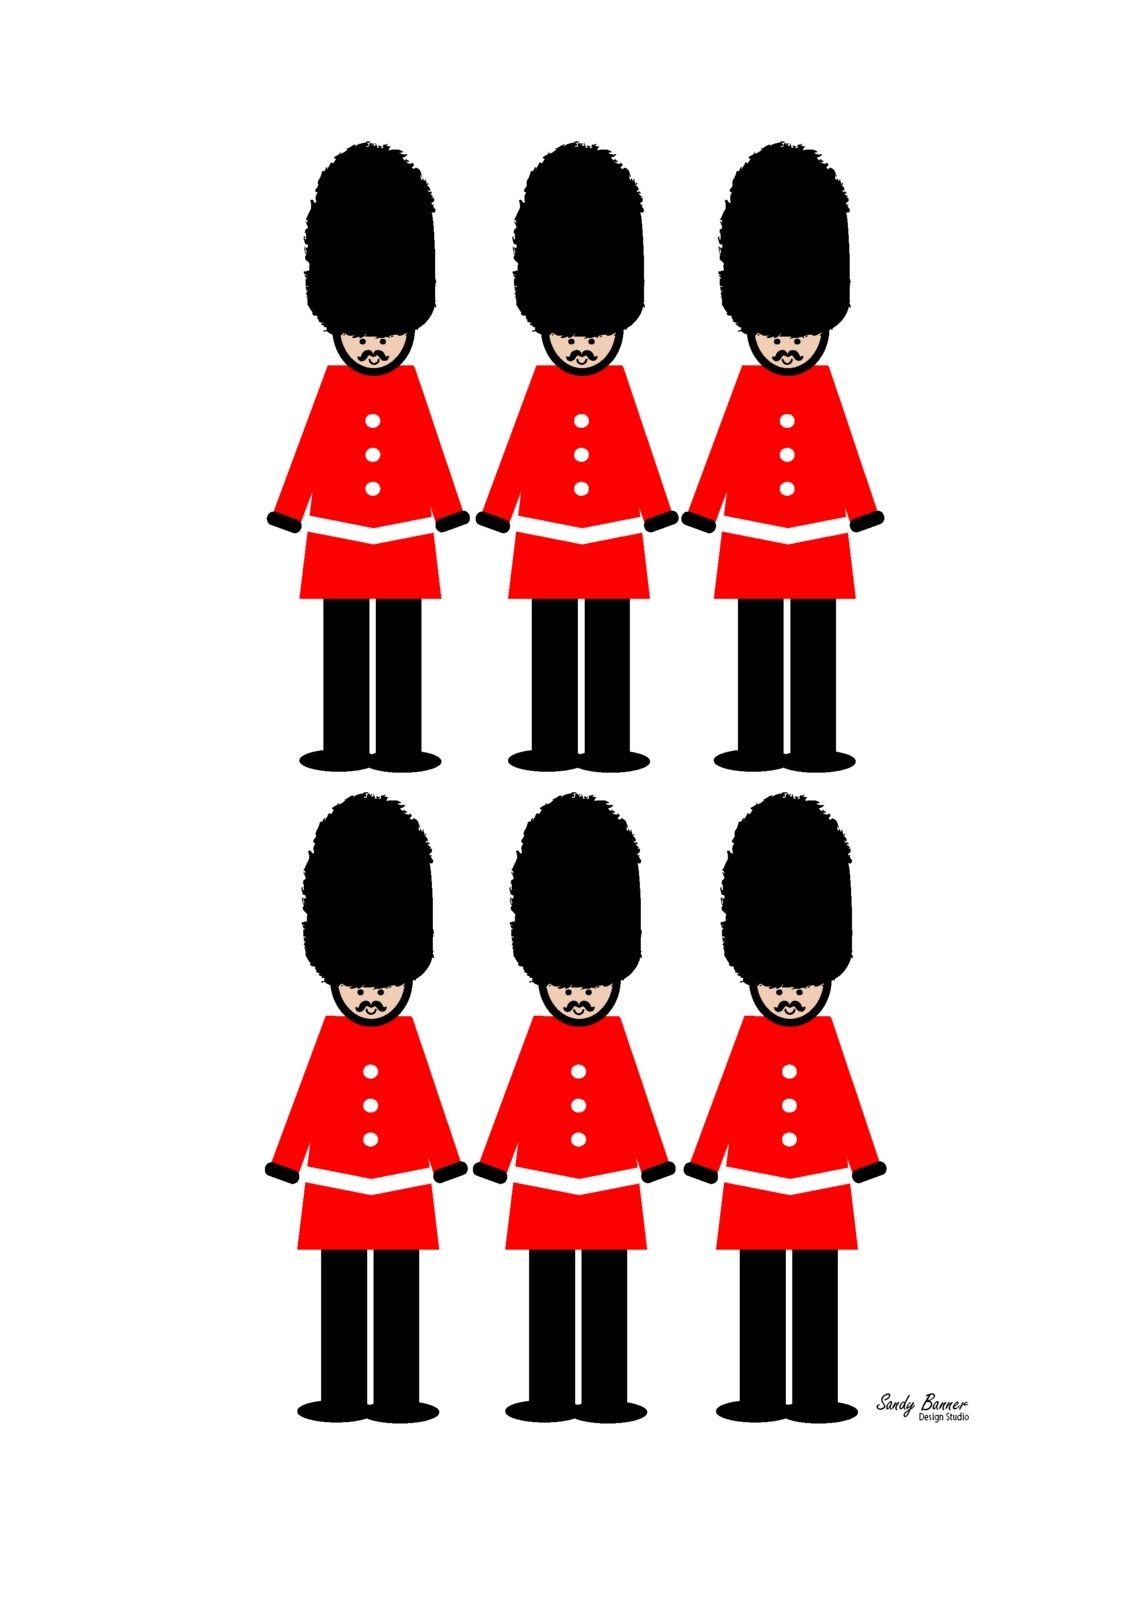 London guard clipart vector library download London guards soldier wall decor art print | urbanity interiors ... vector library download